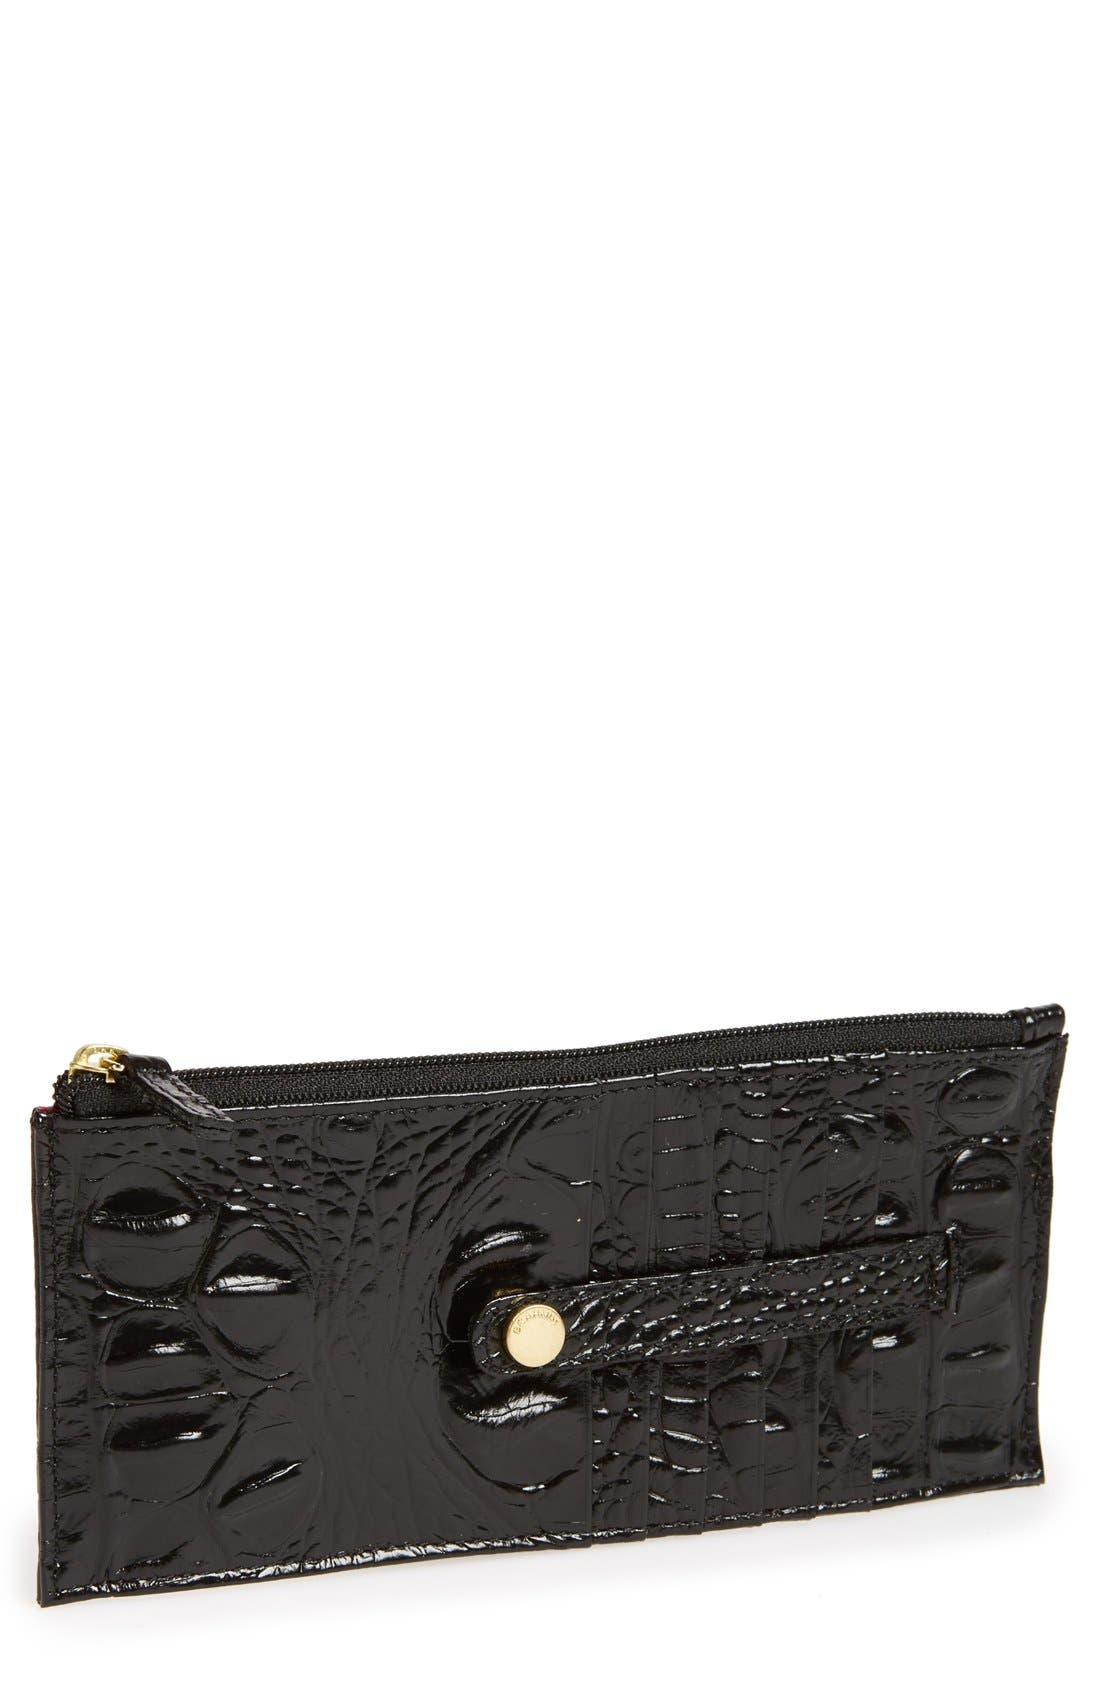 Brahmin 'Melbourne' Credit Card Wallet